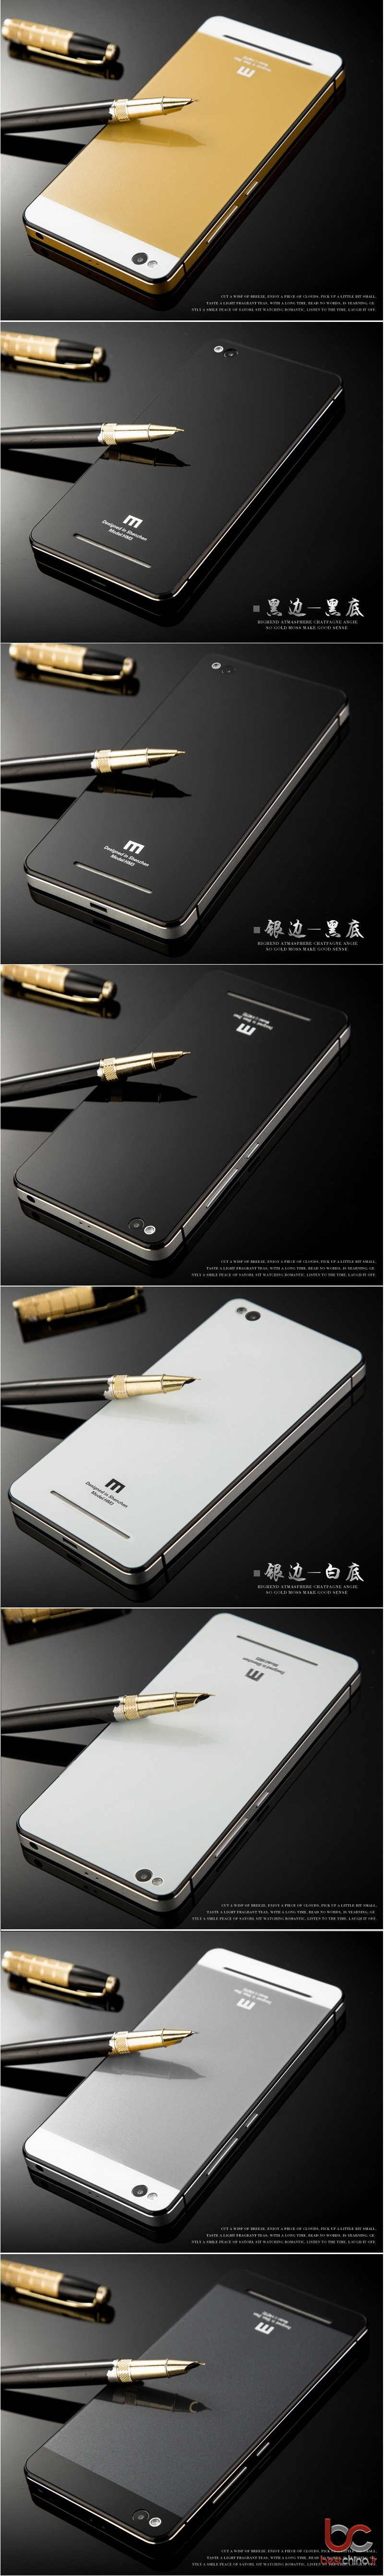 Xiaomi Redmi 3 Aluminium Back Cover (1)